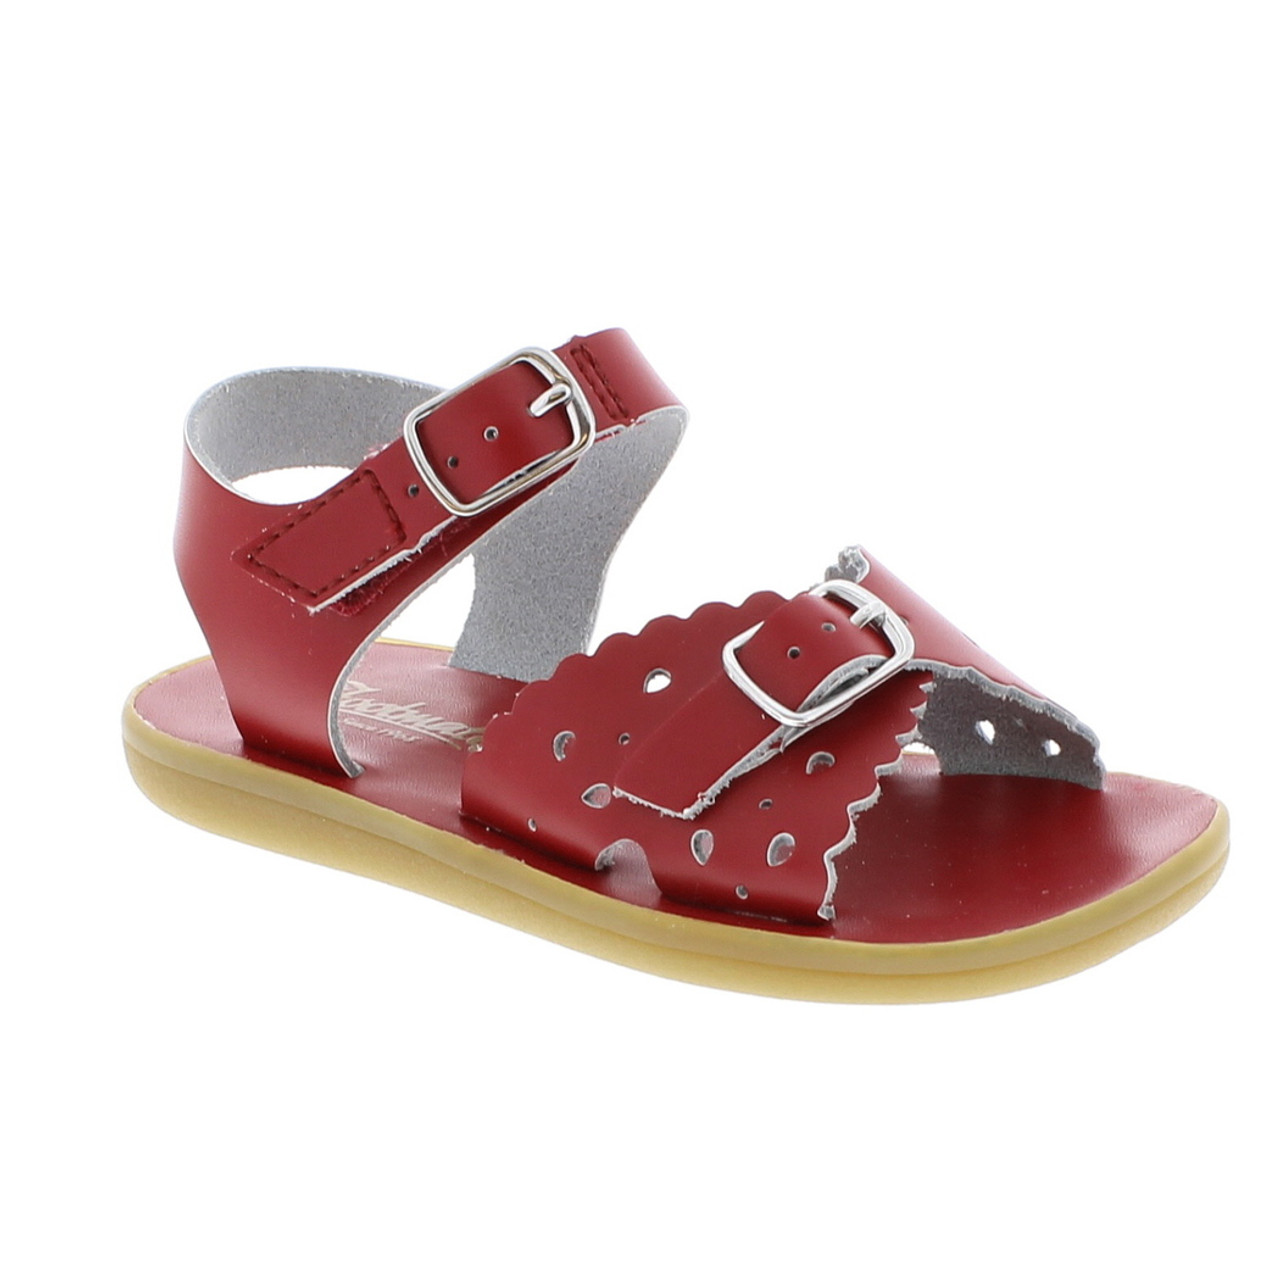 828b81644712d Red Leather Perf Sandal with Velcro Strap (ISCL-ARIEL1112-19)